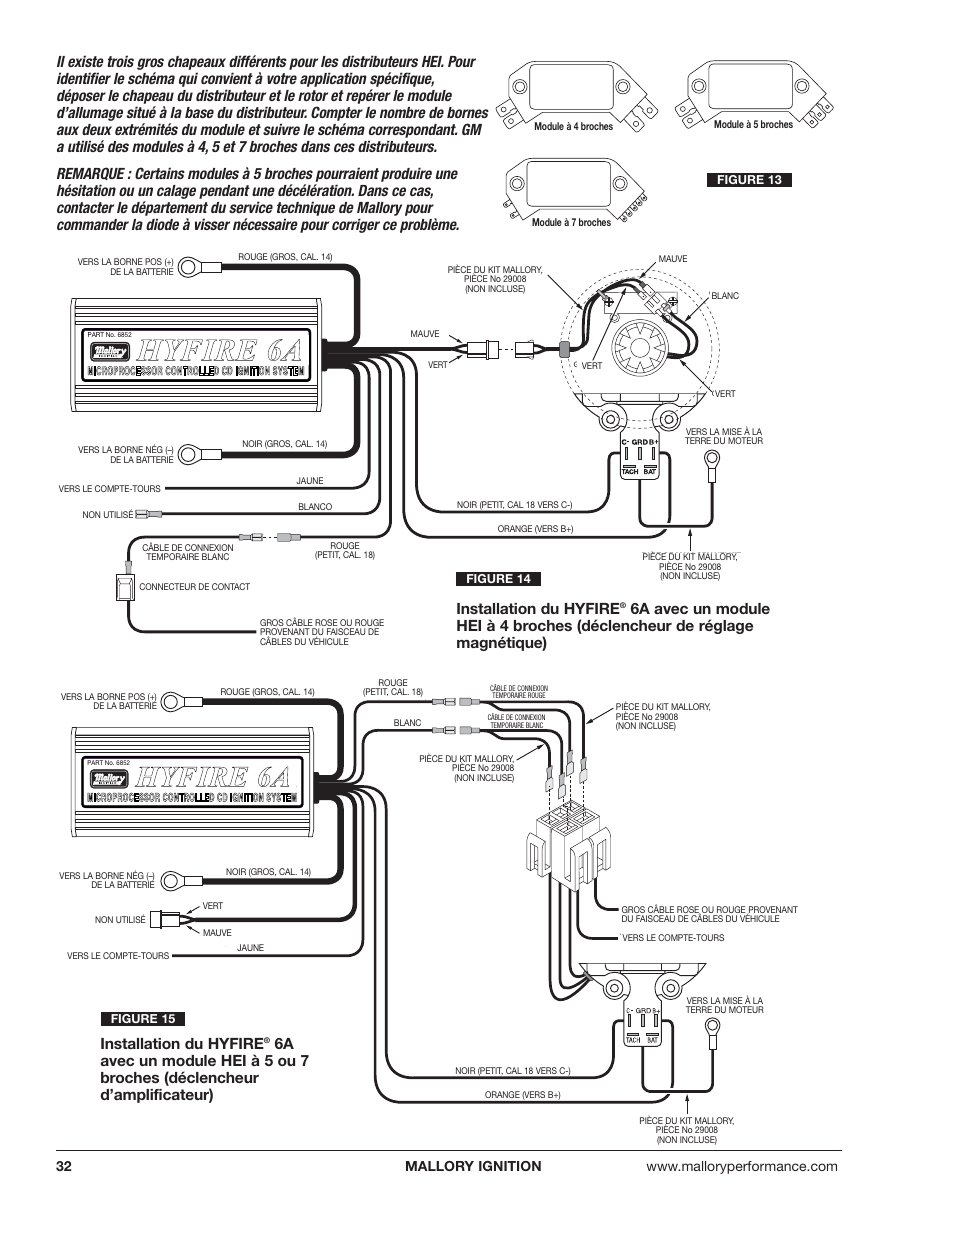 Mallory Ignition Module Electronic Distributor Wiring Diagram Promaster Coil And Unilite 954x1235